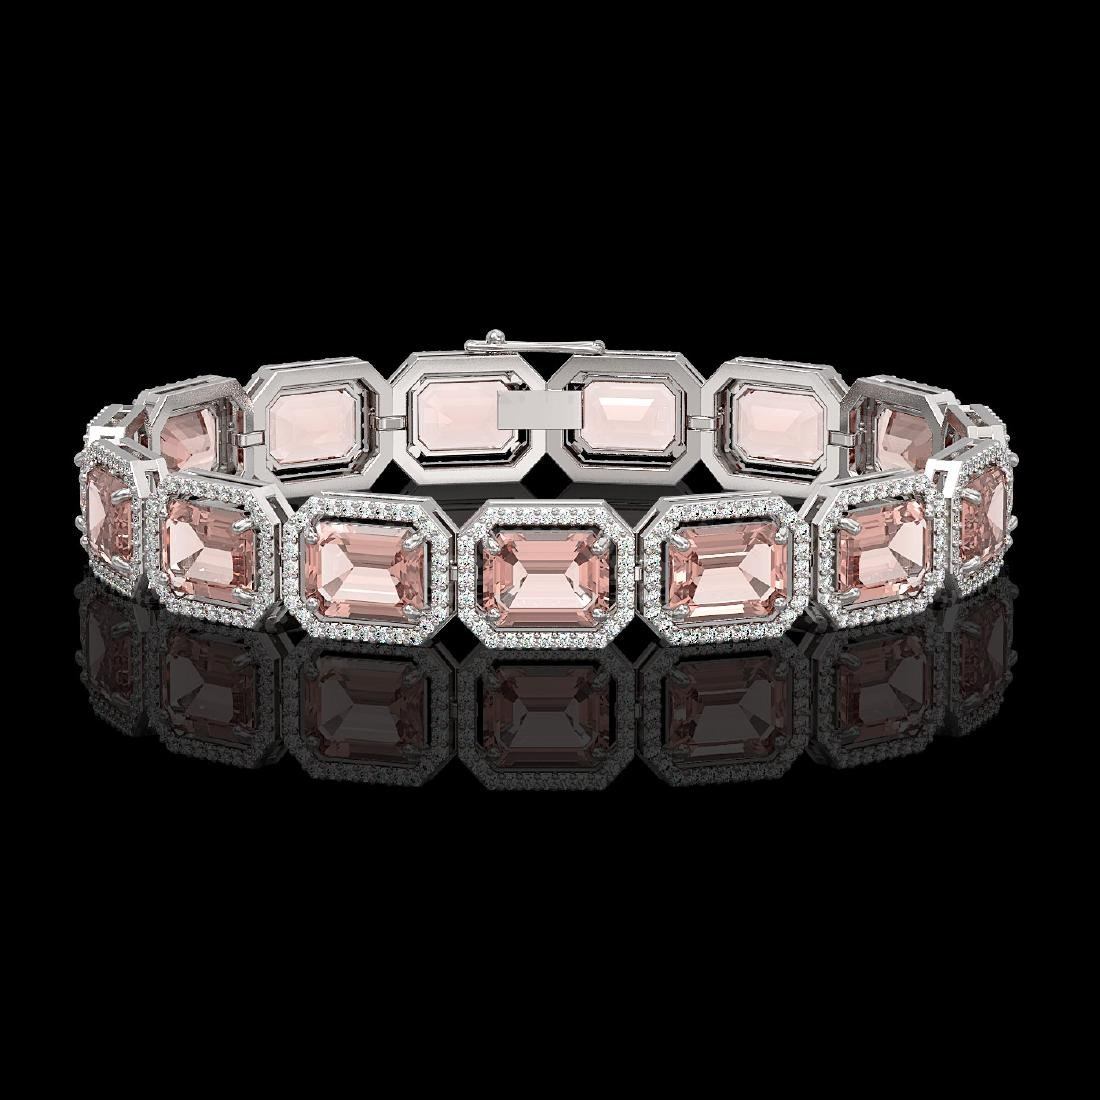 37.11 CTW Morganite & Diamond Halo Bracelet 10K White